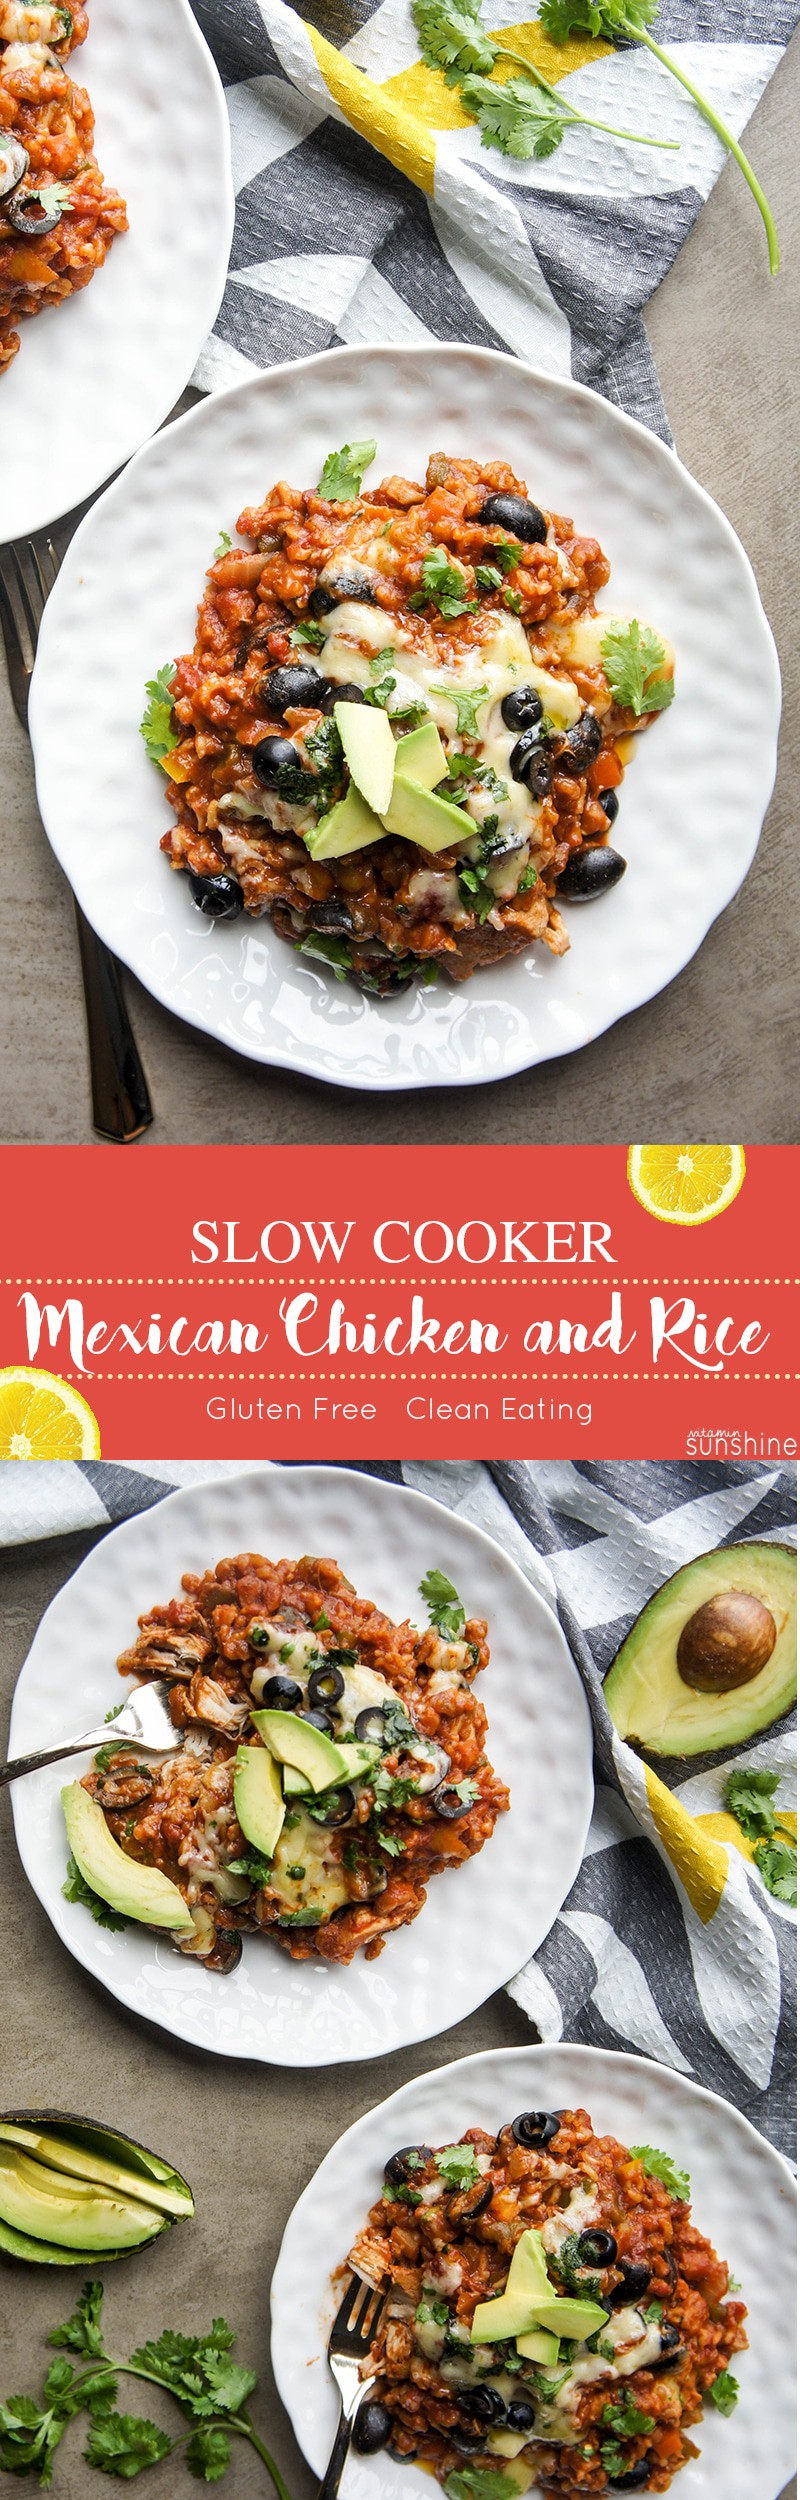 Mexican Chicken And Rice This Slow Cooker Brown Recipe Is Packed With